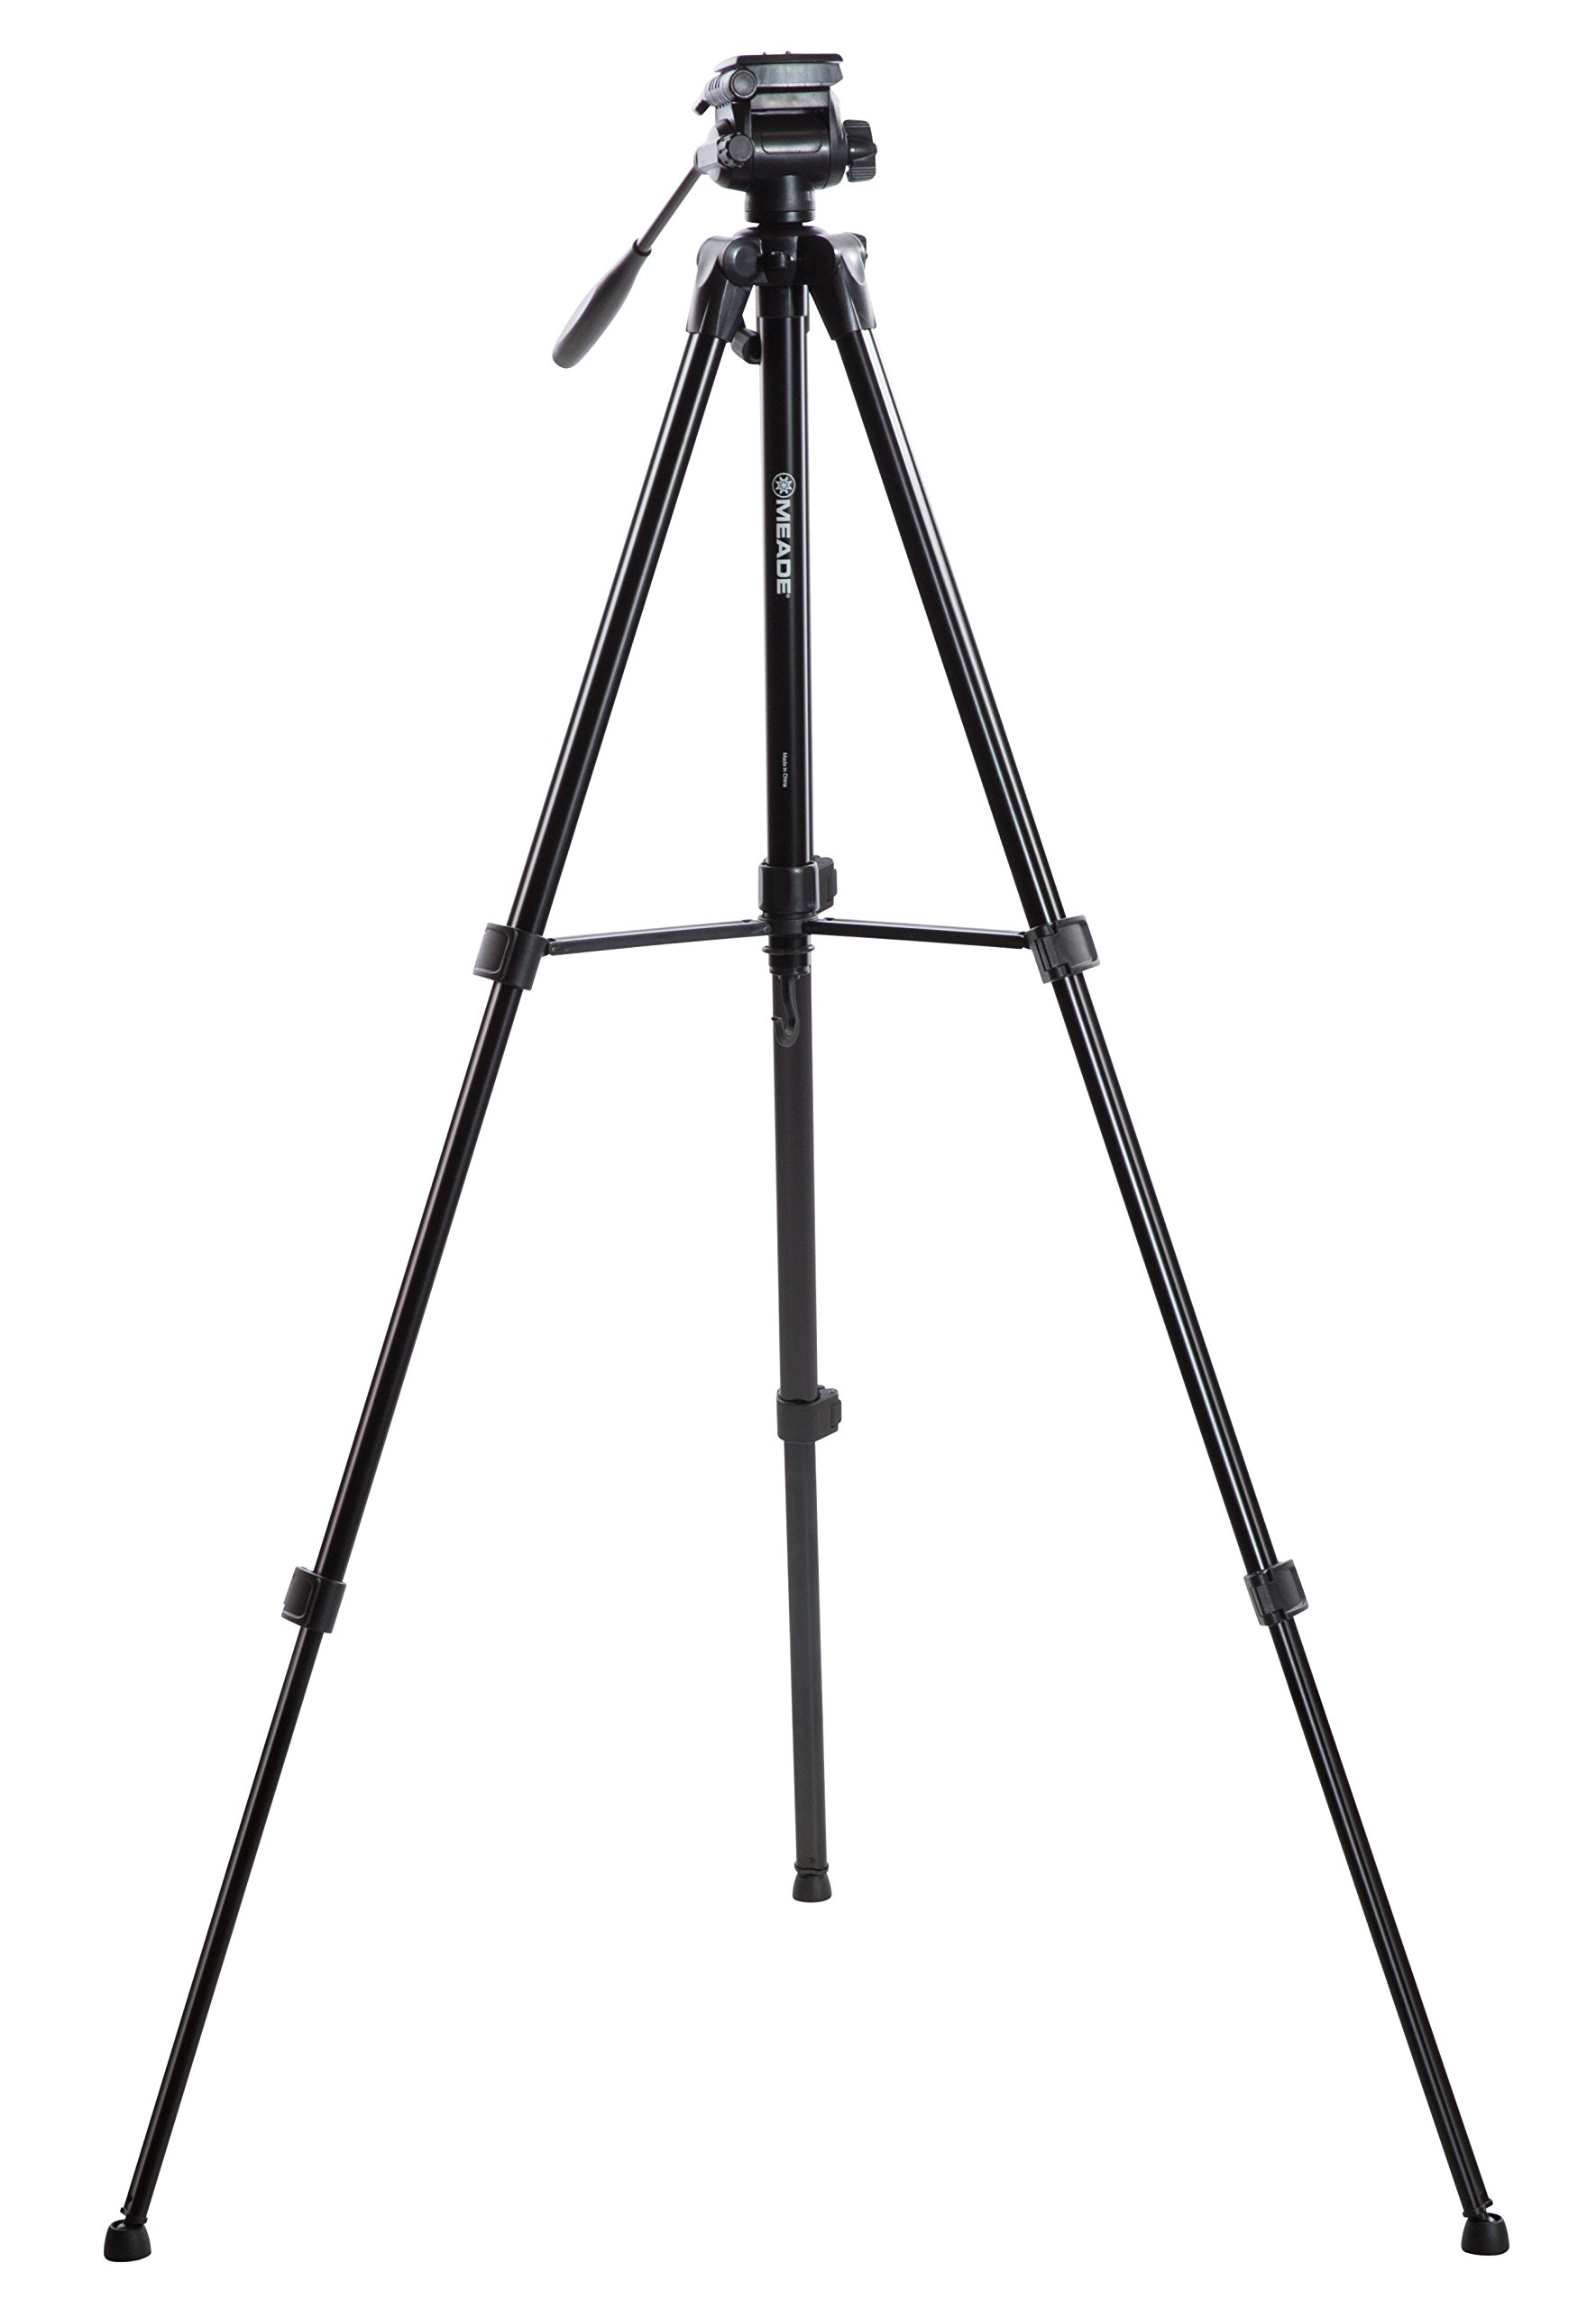 Meade Instruments Classic 30 Photo Tripod, for Full-Sized Binoculars or Spotting Scopes (608050)